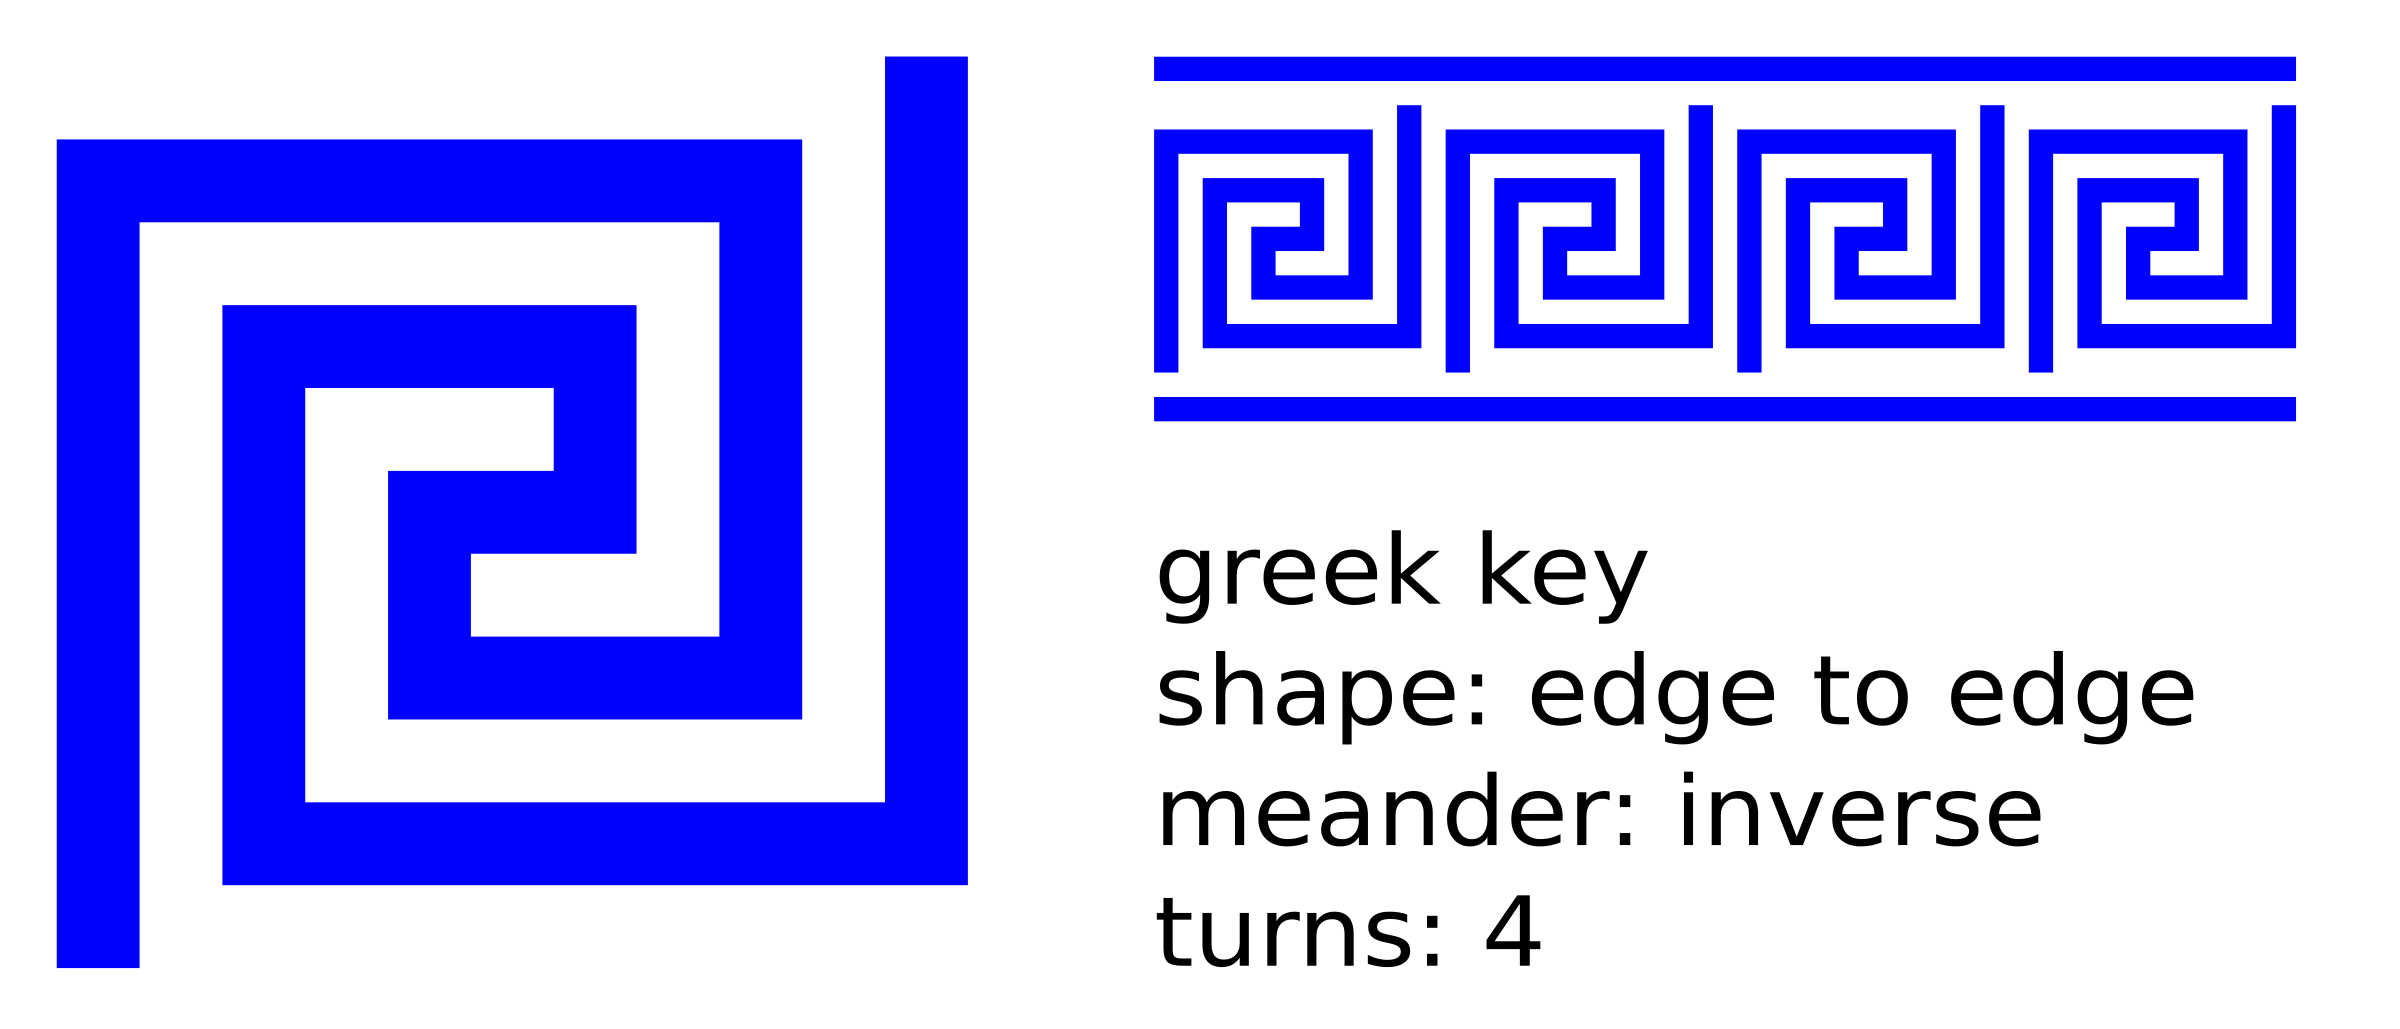 edge to edge 4 turns greek key, inverse meandre, with lines by ovideva